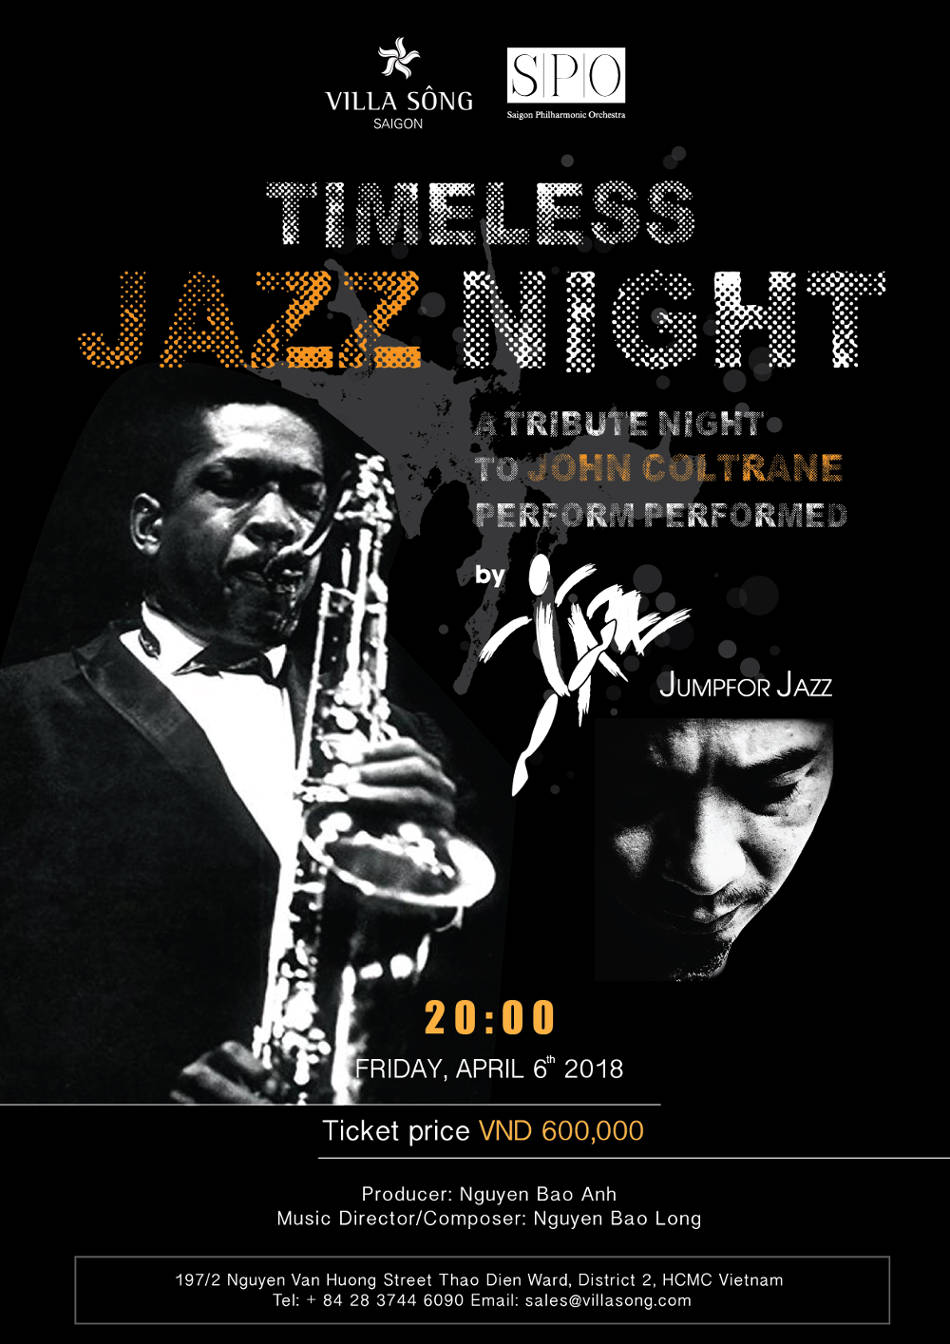 Timeless Jazz night at Villa Song Saigon